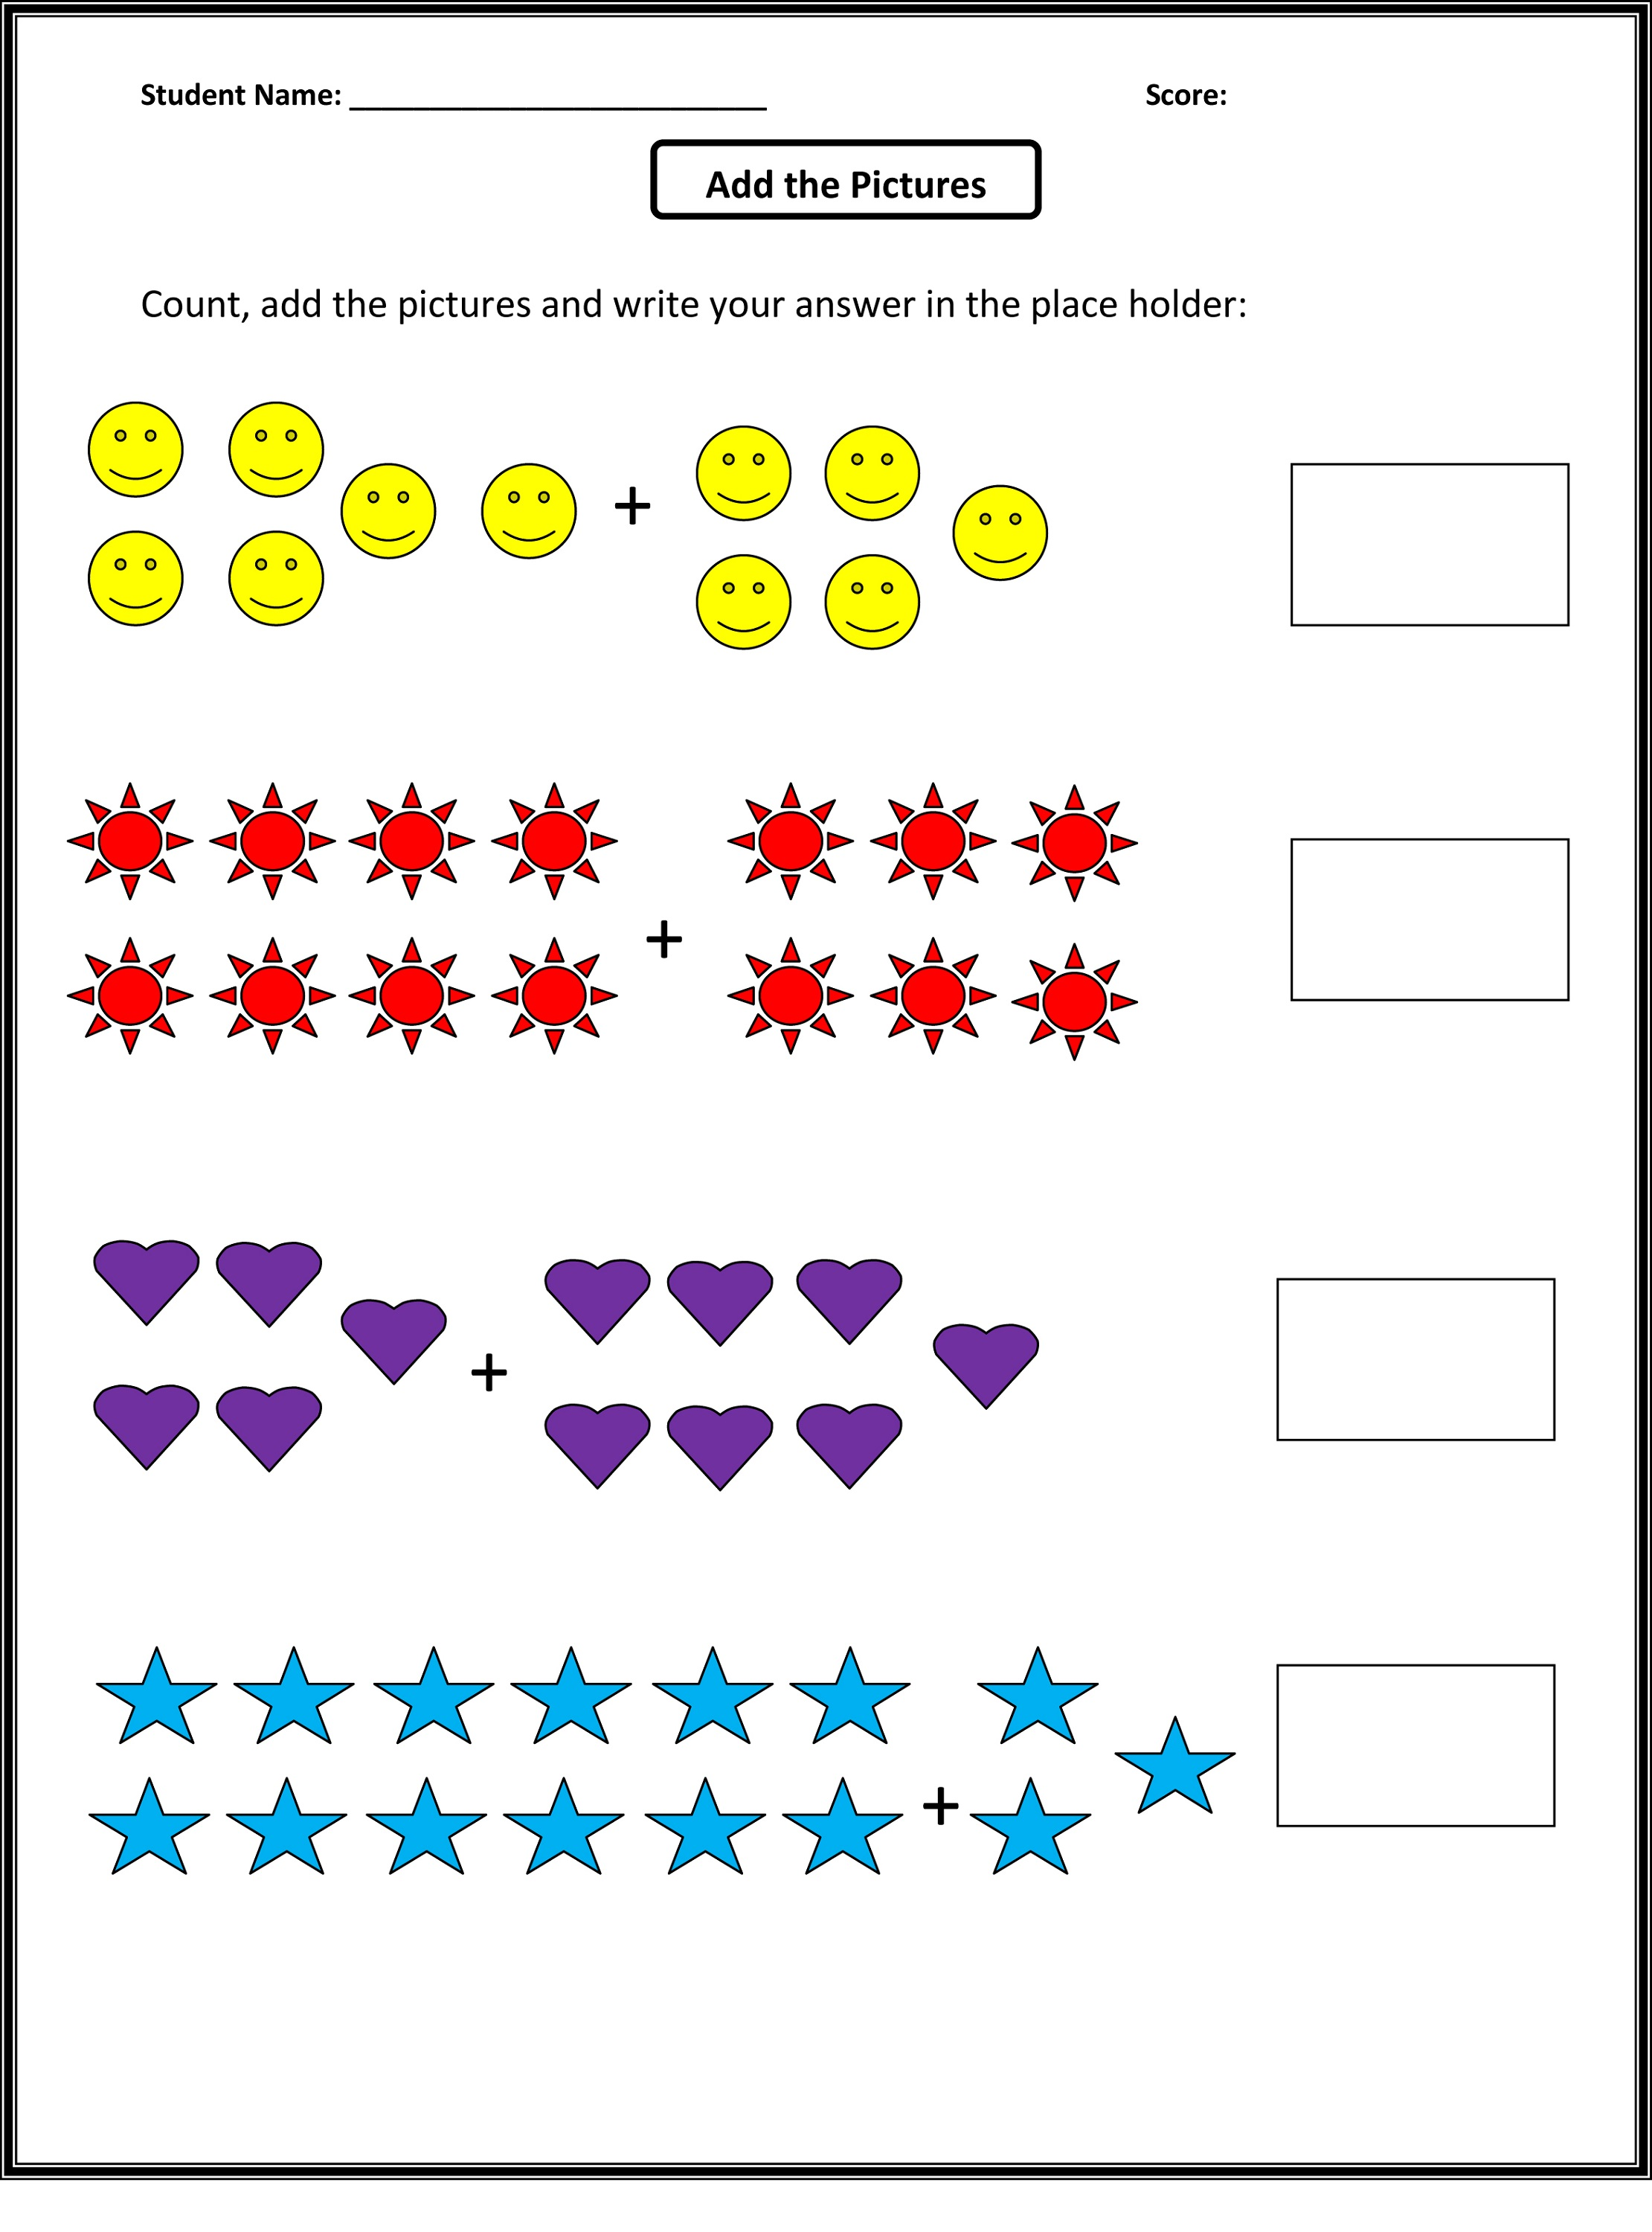 Fun Math Worksheets to Print – Fun Math Worksheets